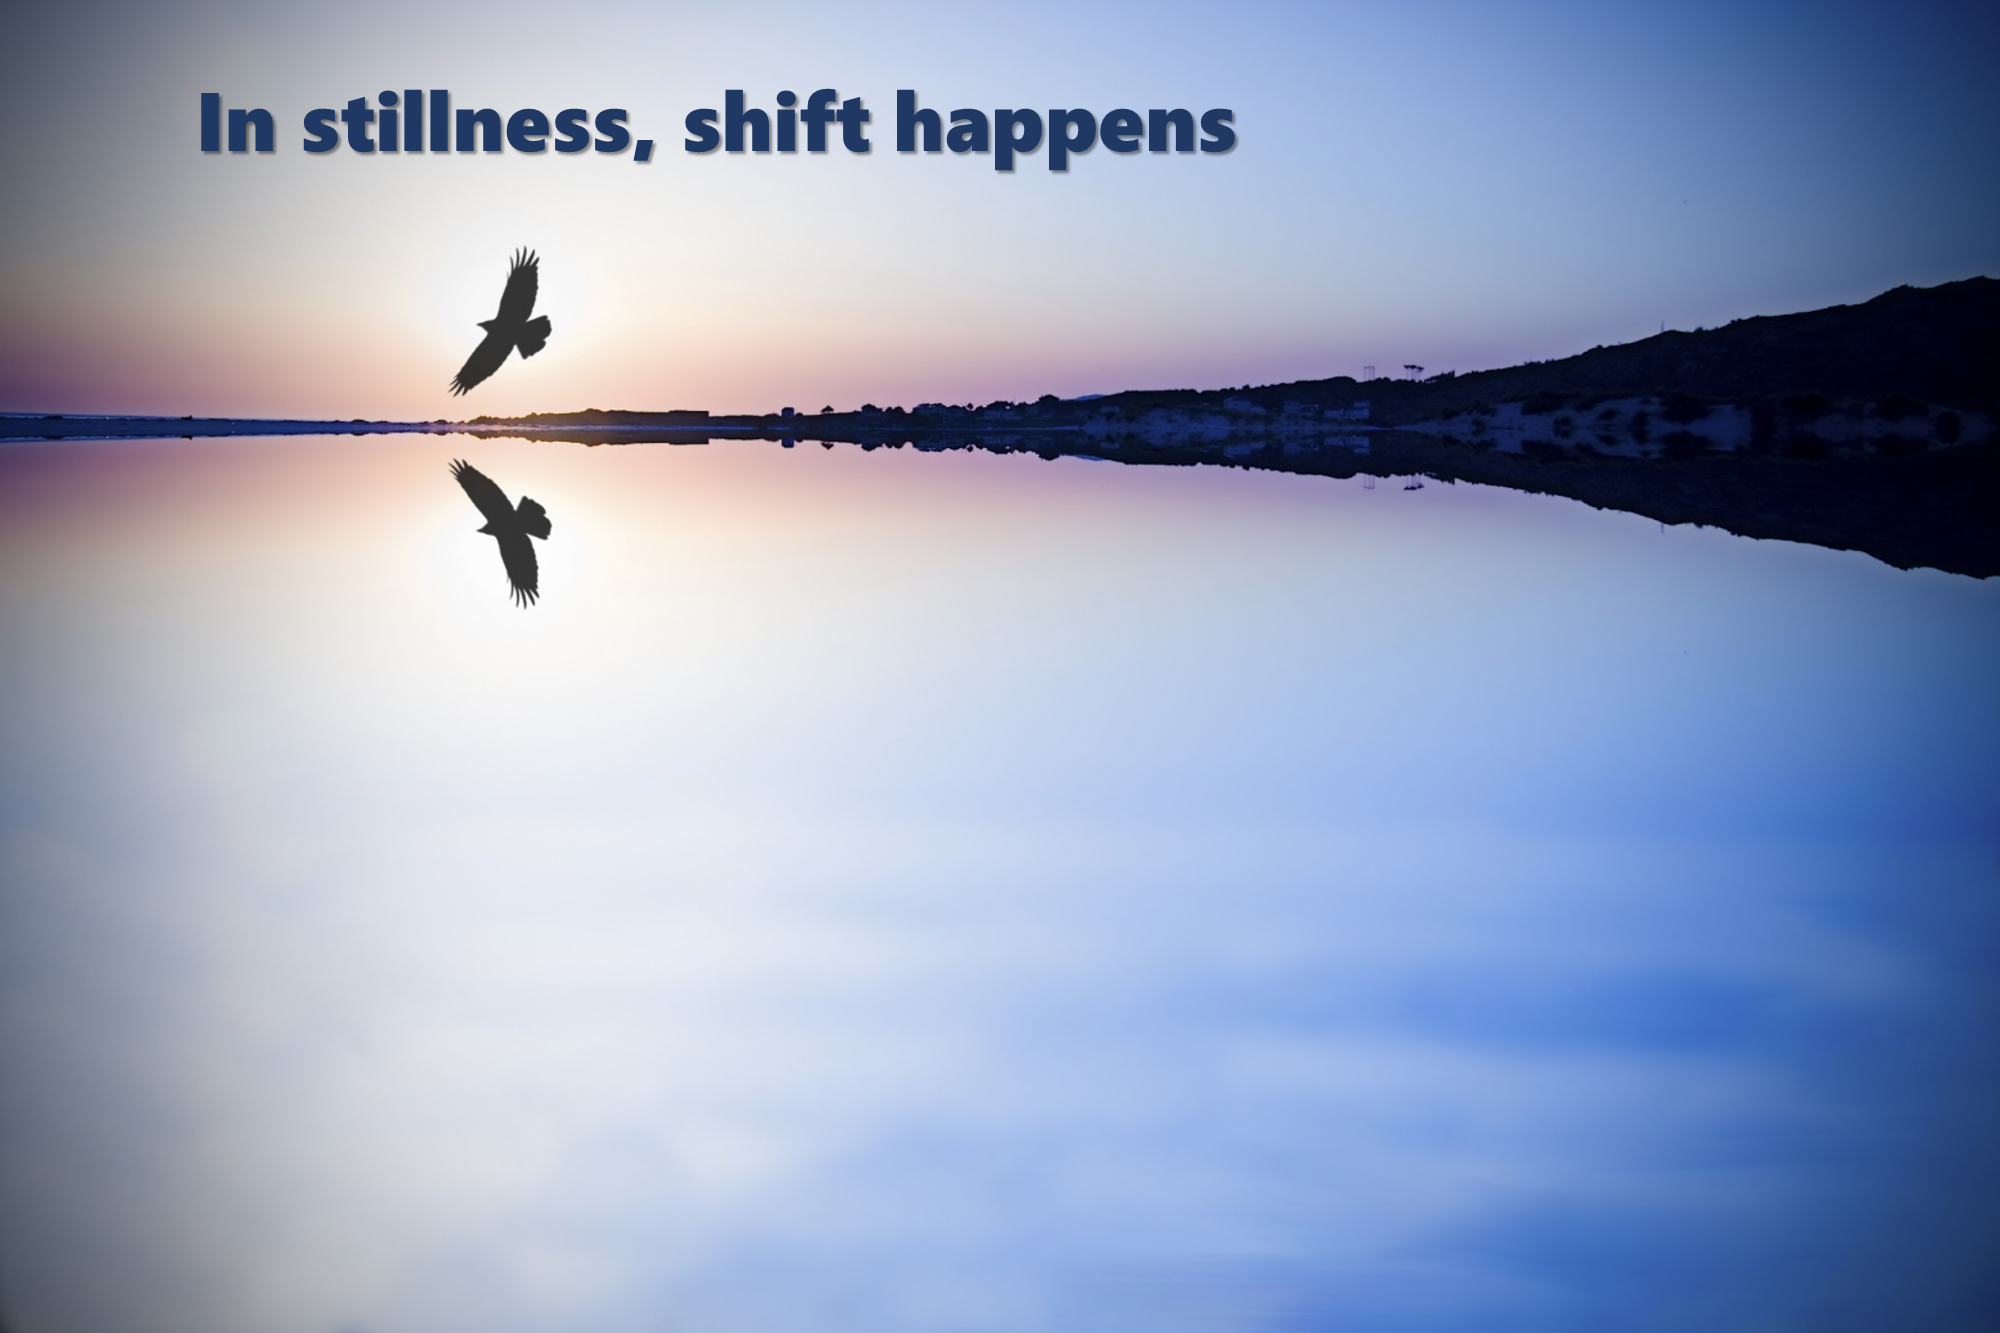 Shift-happens